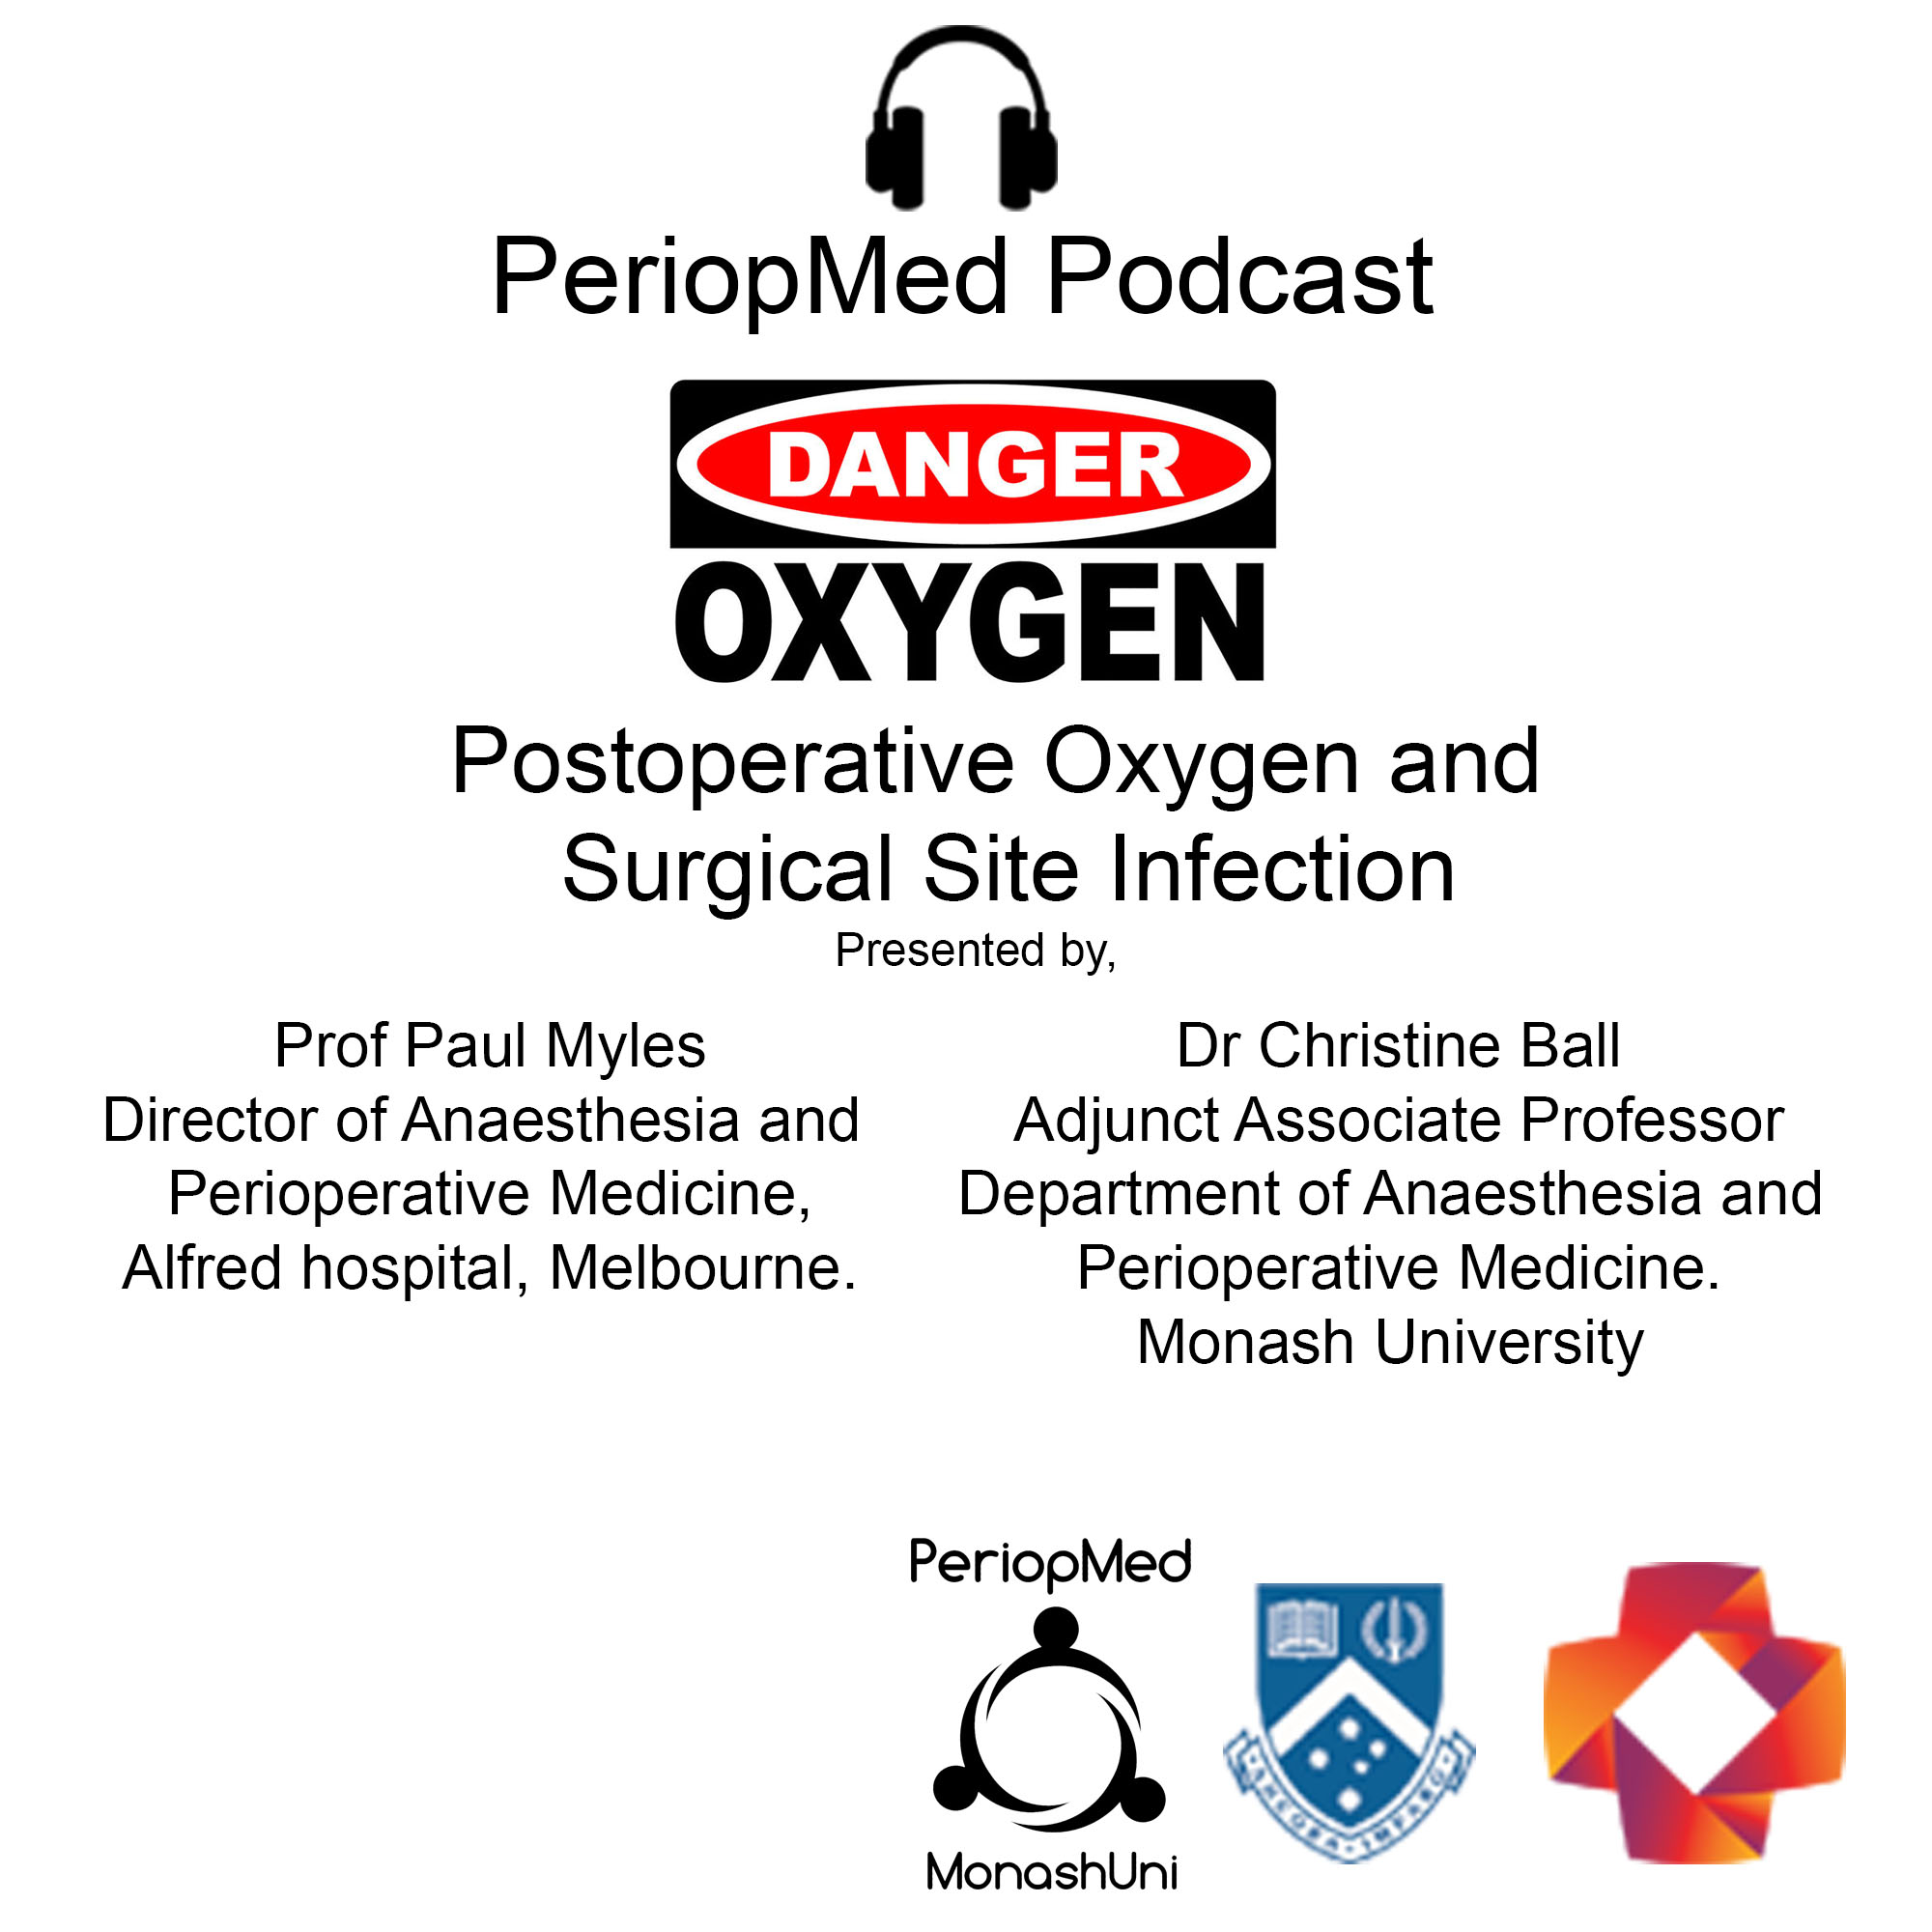 Postoperative Oxygen and Surgical Site Infection